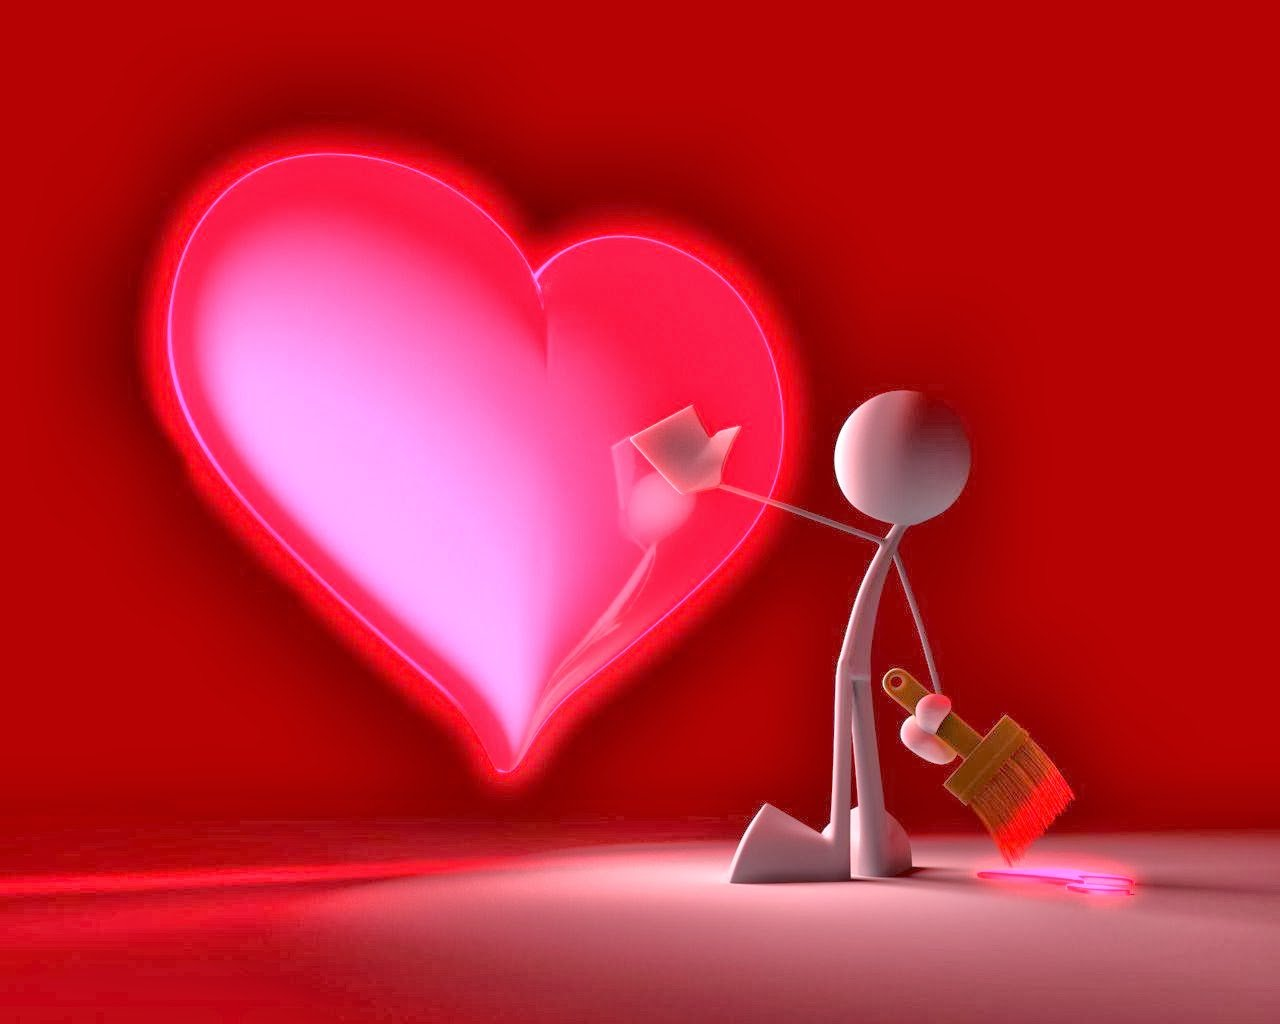 Beautiful Love Gift Wallpaper : Beautiful Love Wallpapers for Mobile - WallpaperSafari